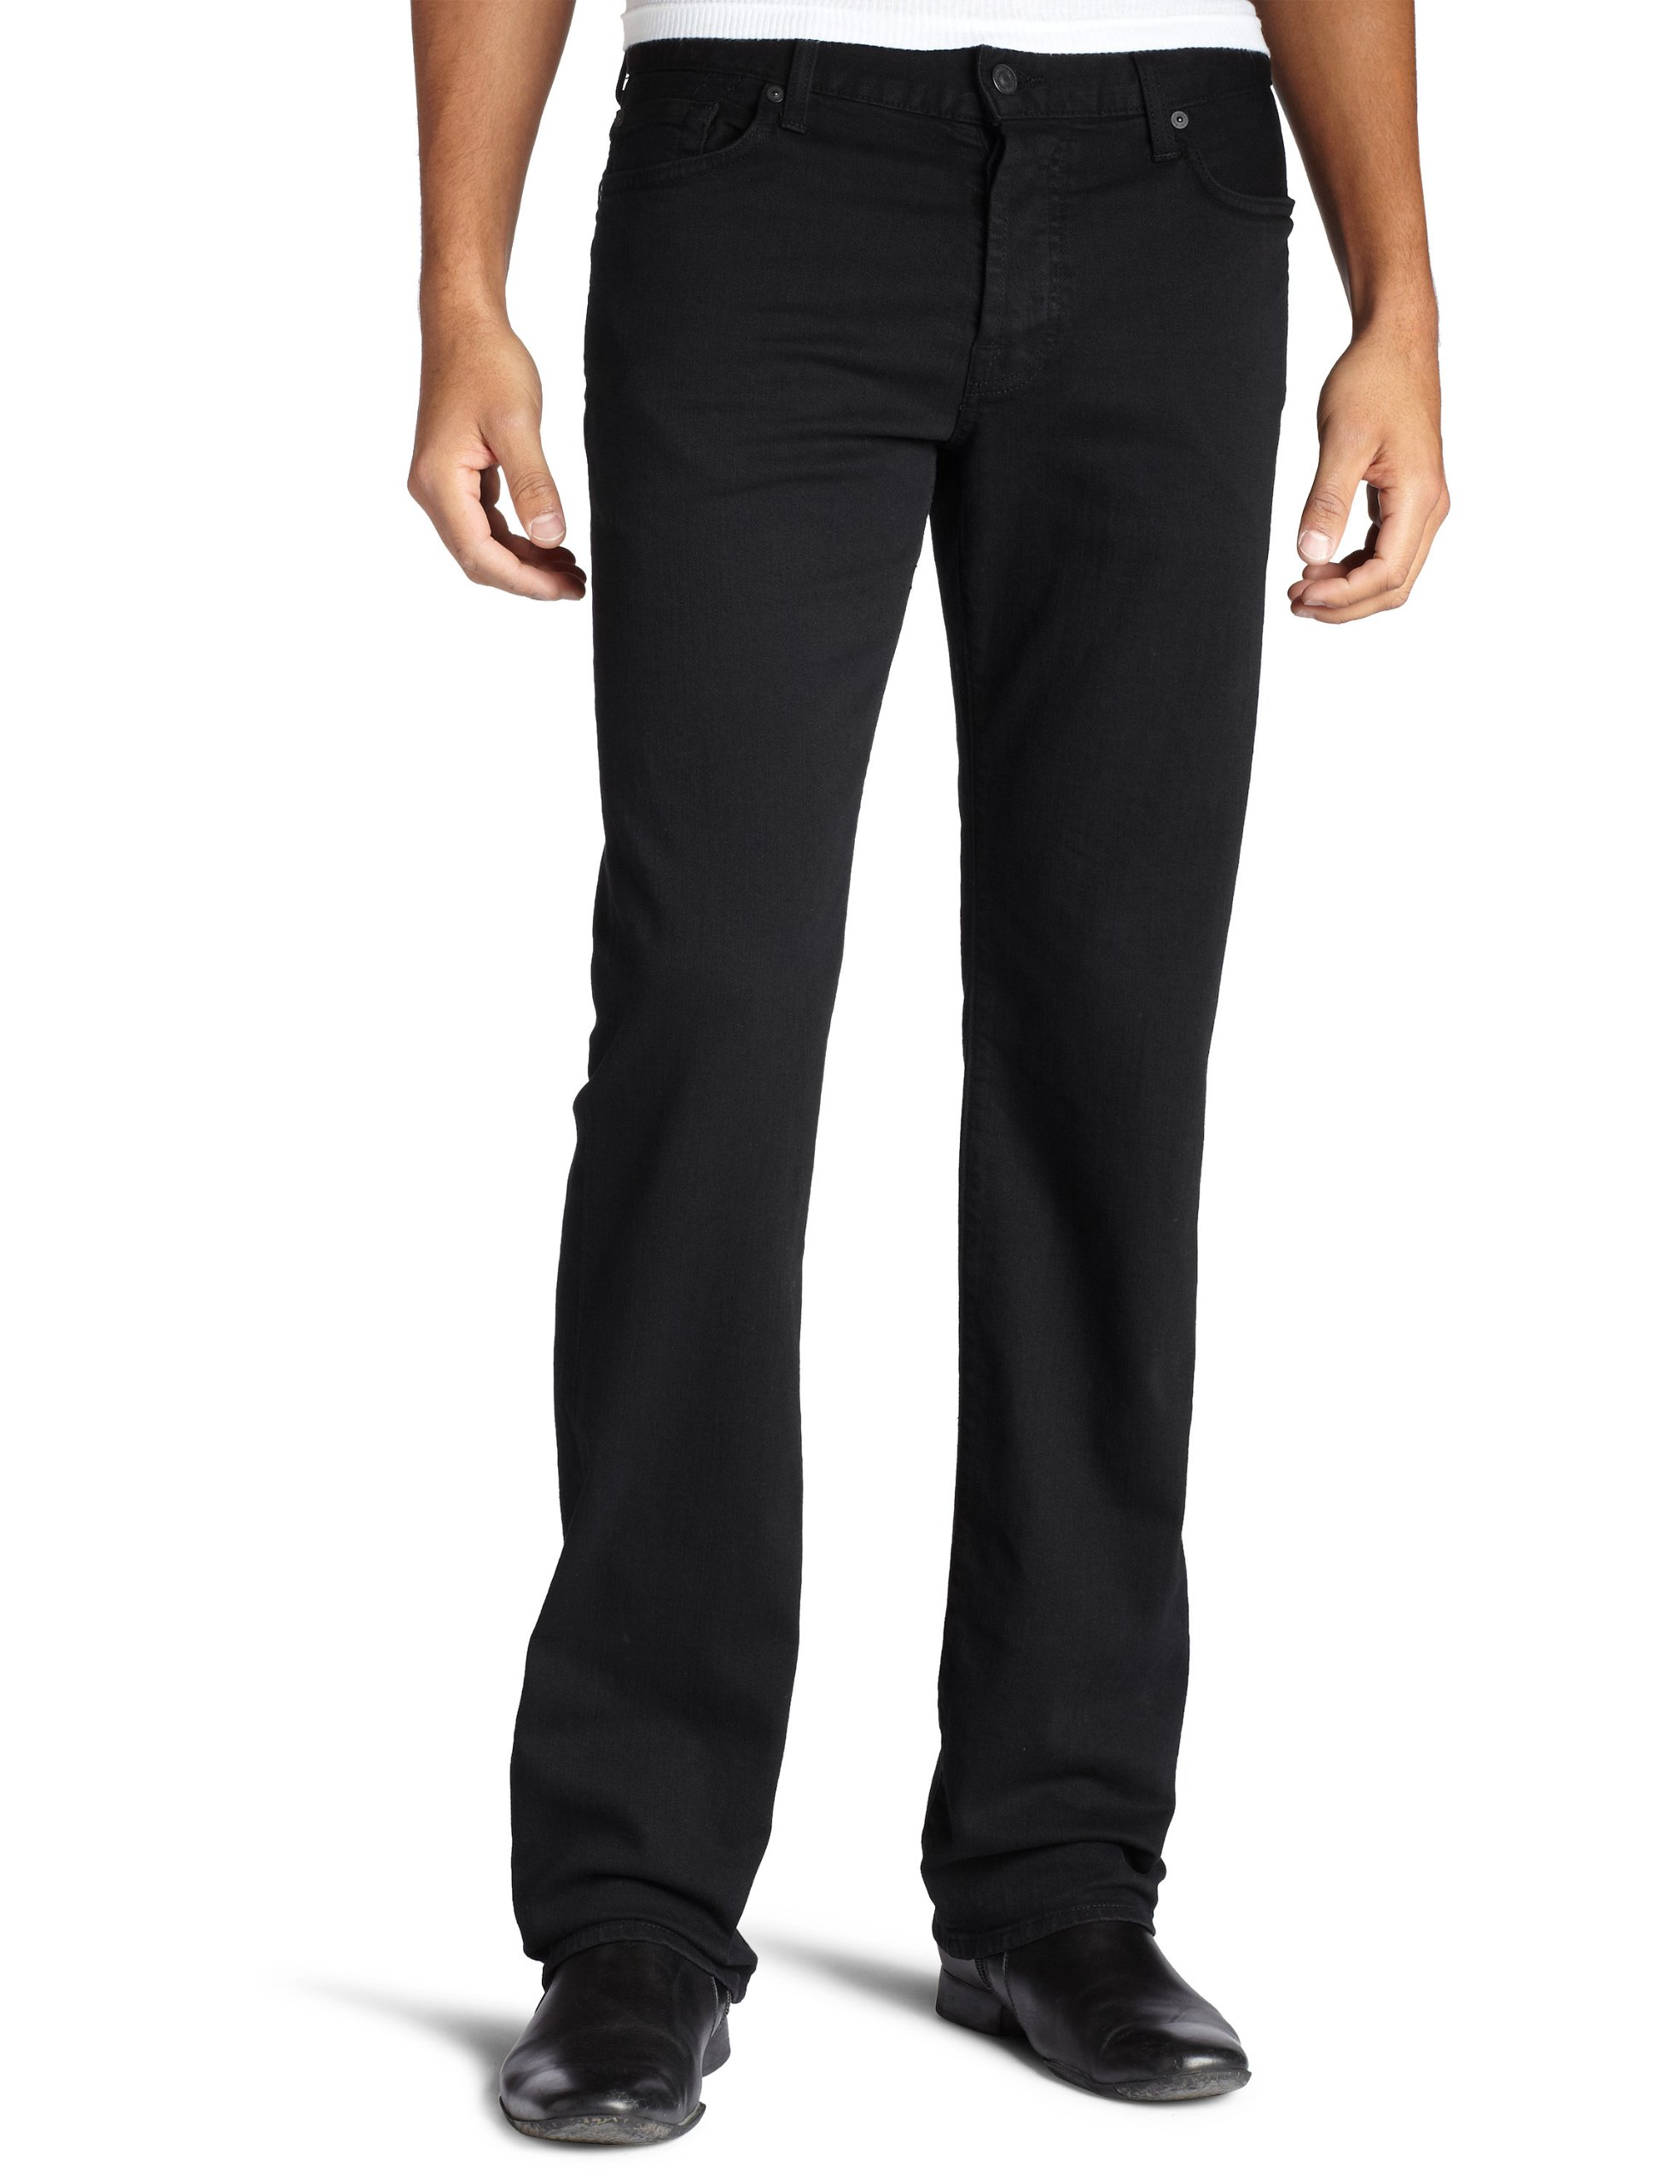 7 For All Mankind Men's Standard Straight Leg Jean in Black Out,  Black Out, 31X34